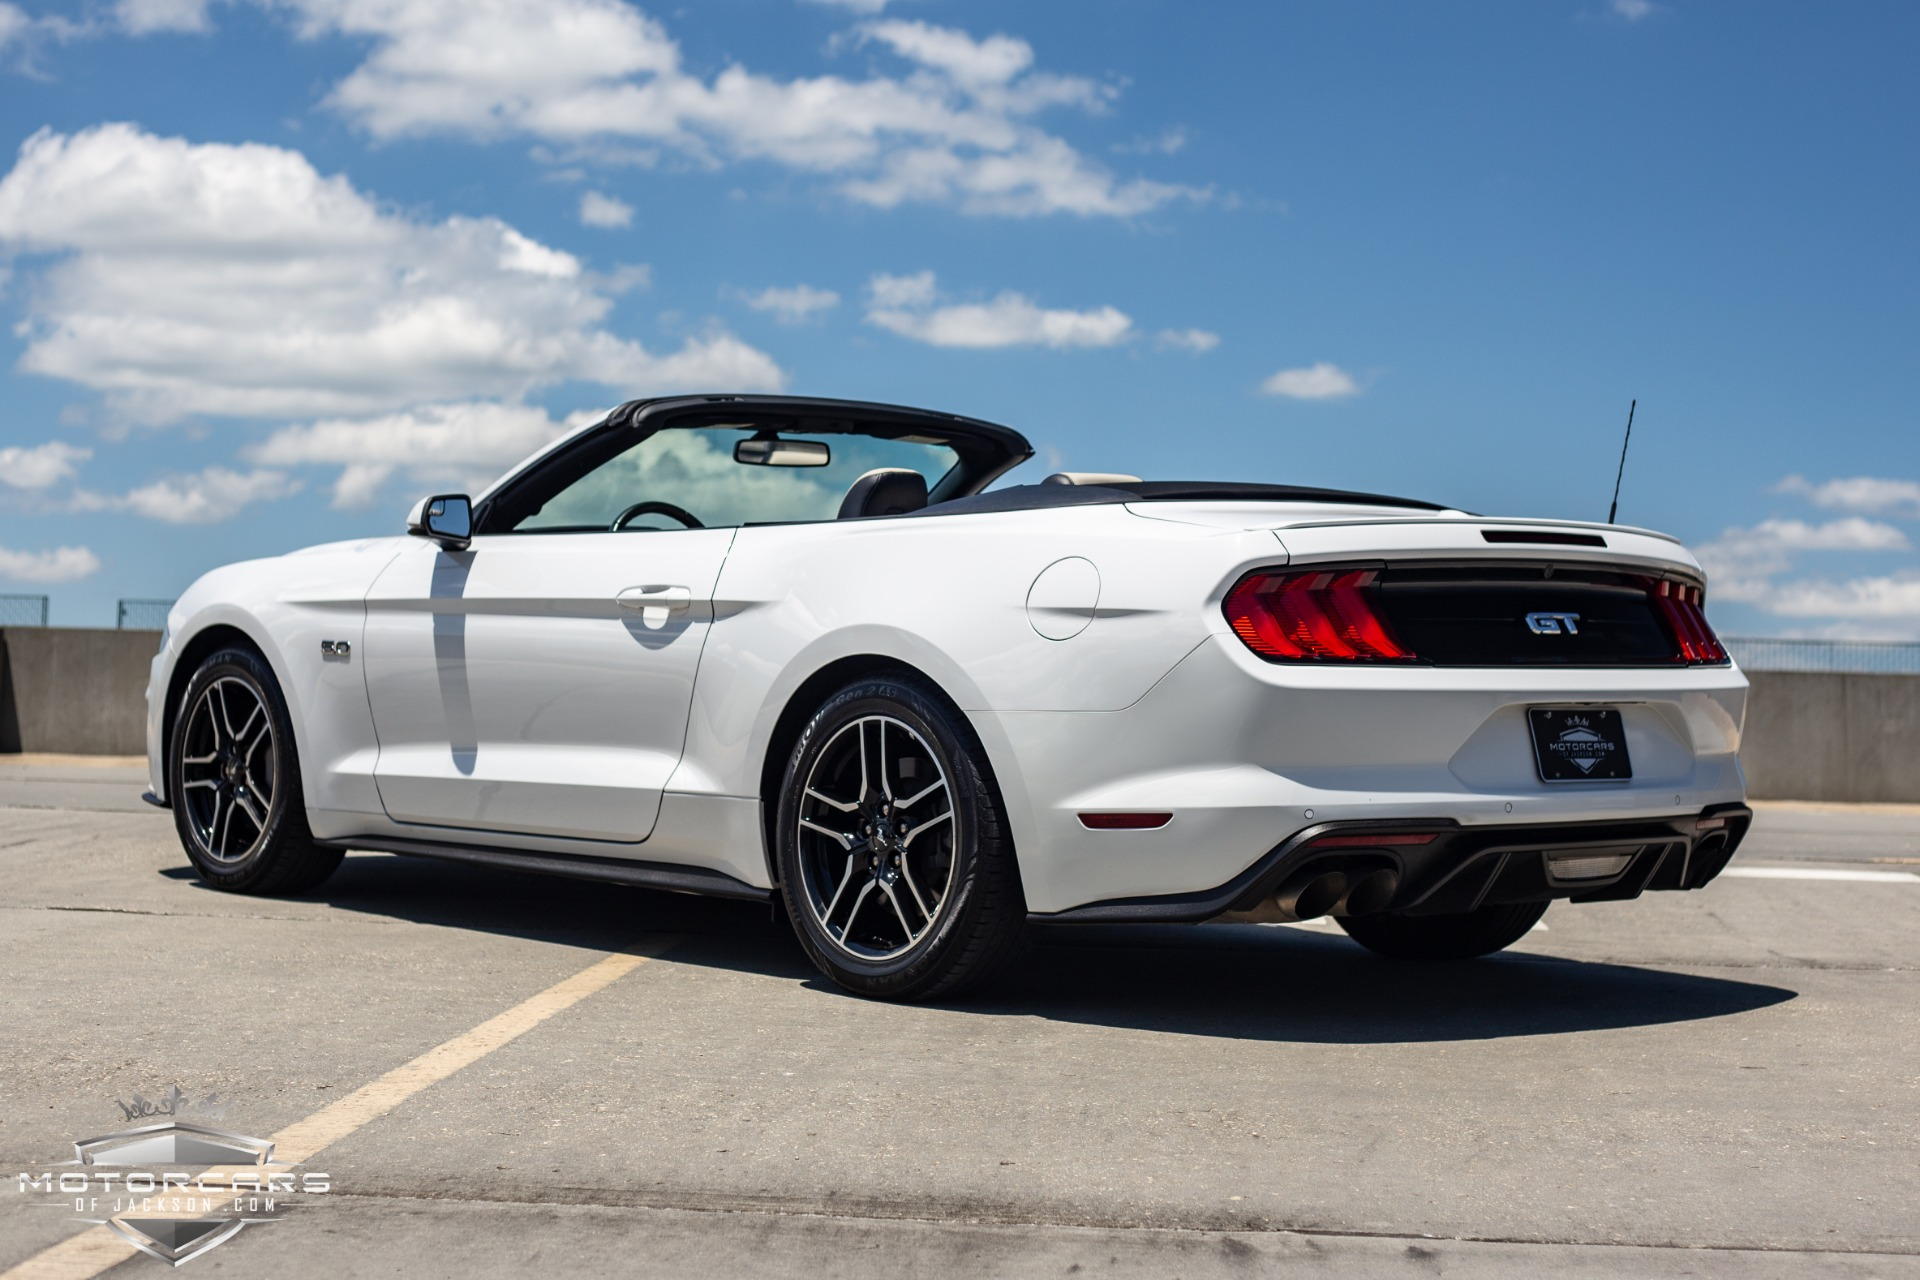 Used 2018 Mustang Gt For Sale